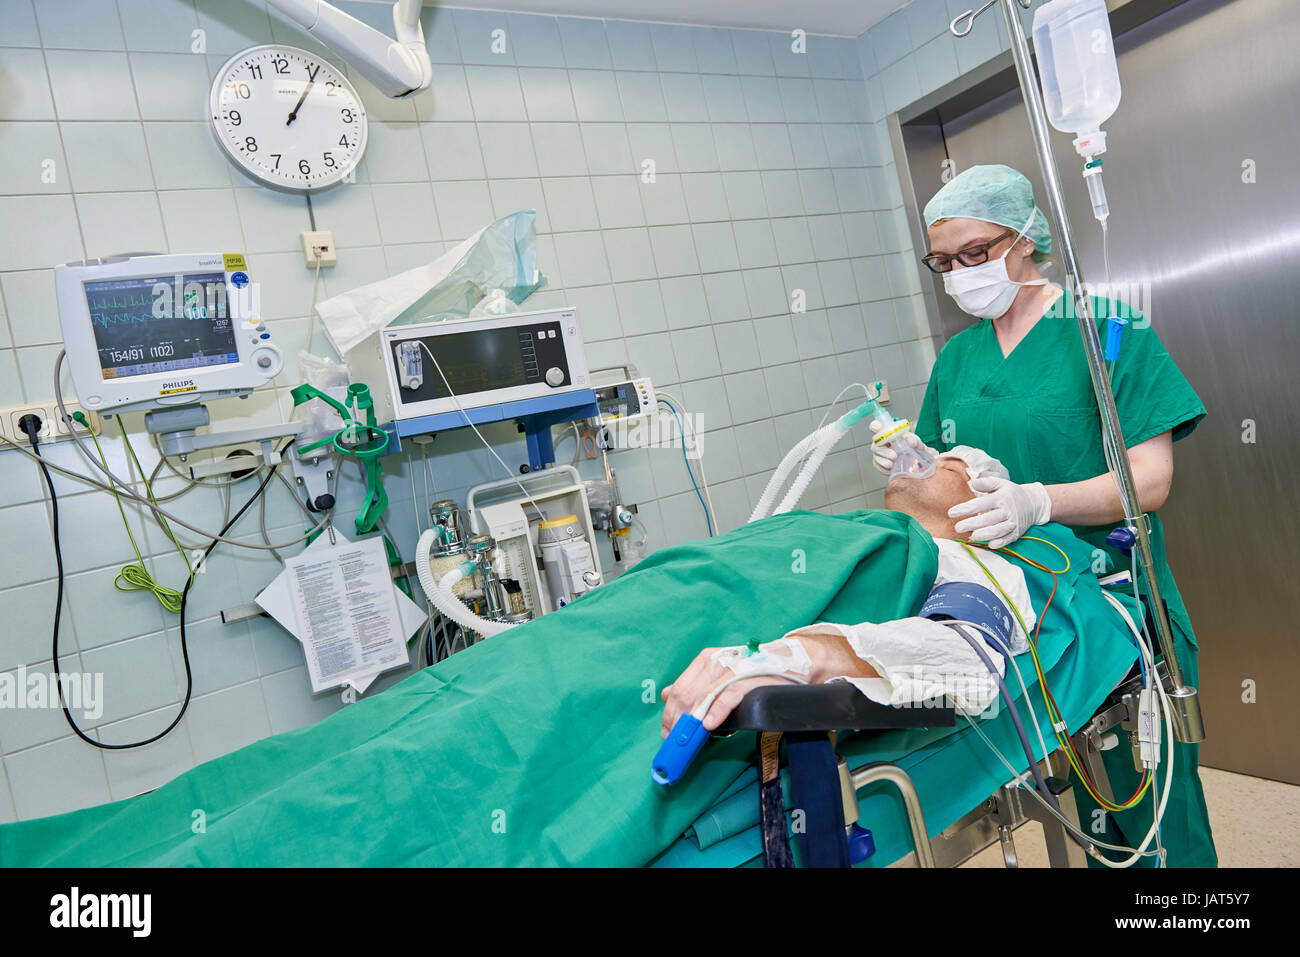 anesthetist anesthetize patient before operation - Stock Image